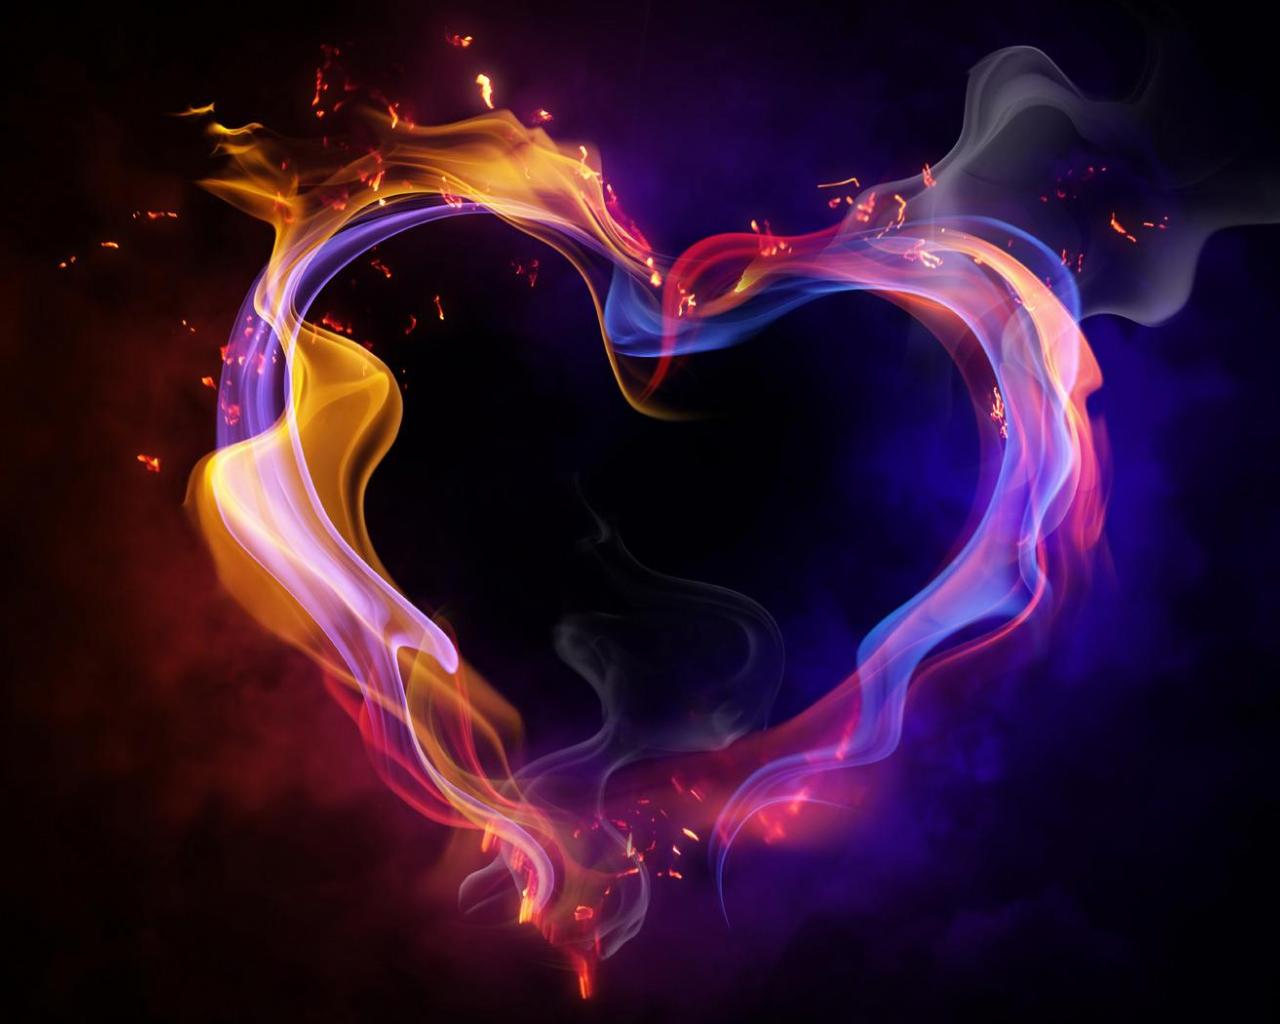 Neon Hearts Wallpaper